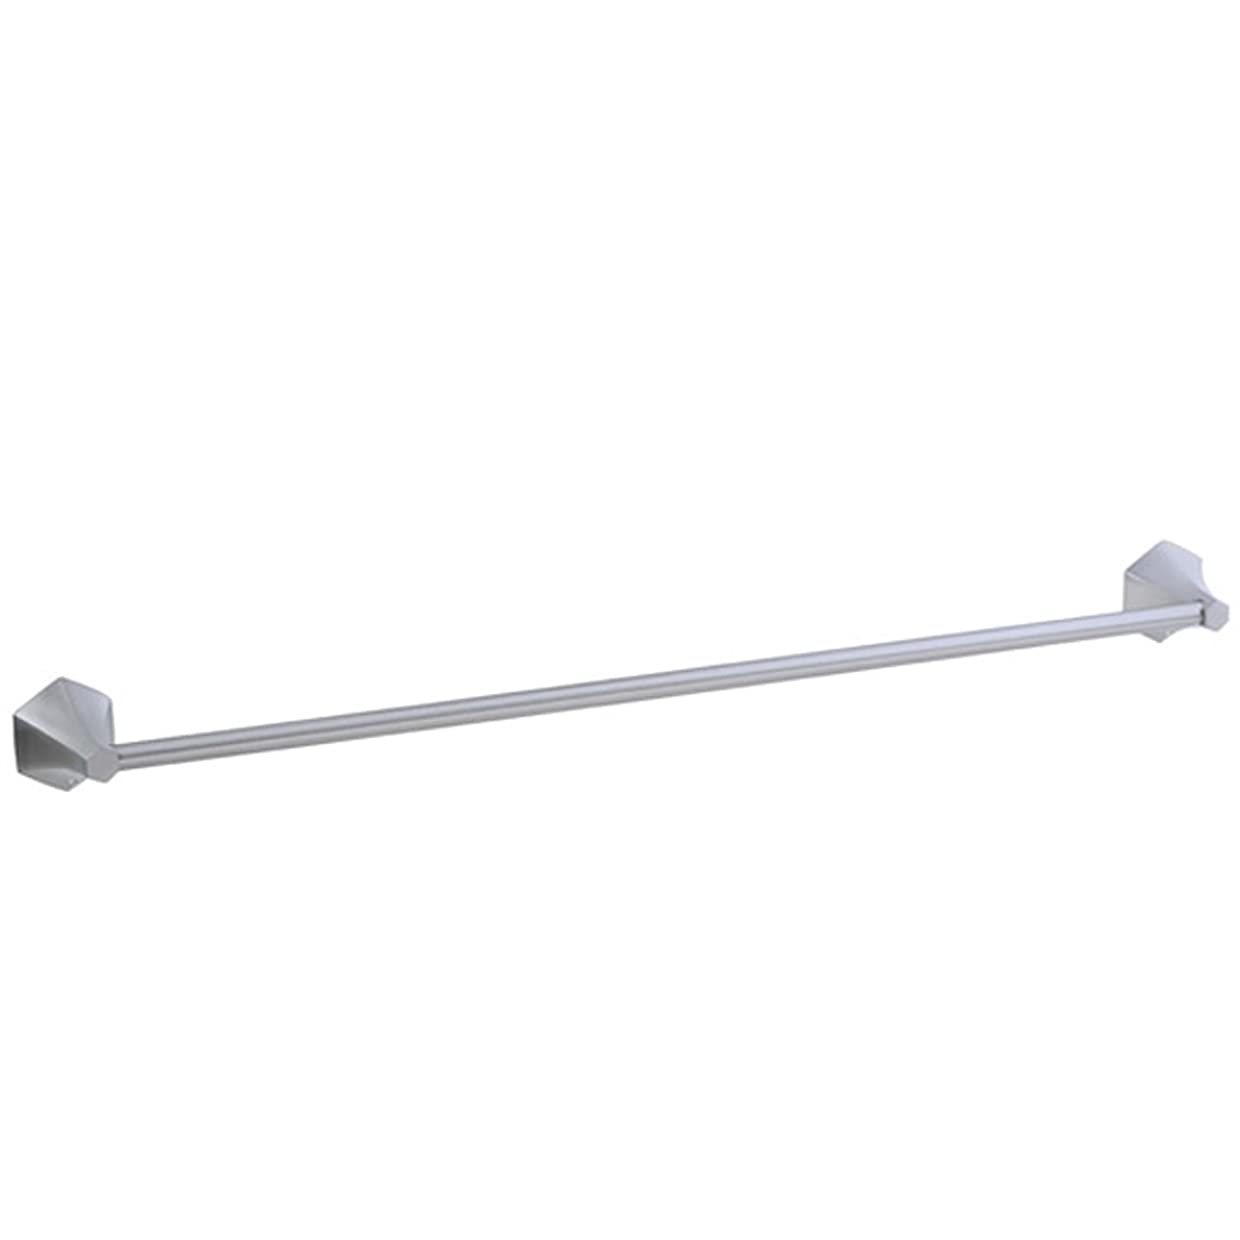 記録差し控える離れてCifial 401.318.620 Hexa Towel Bar, 46cm, Satin Nickel